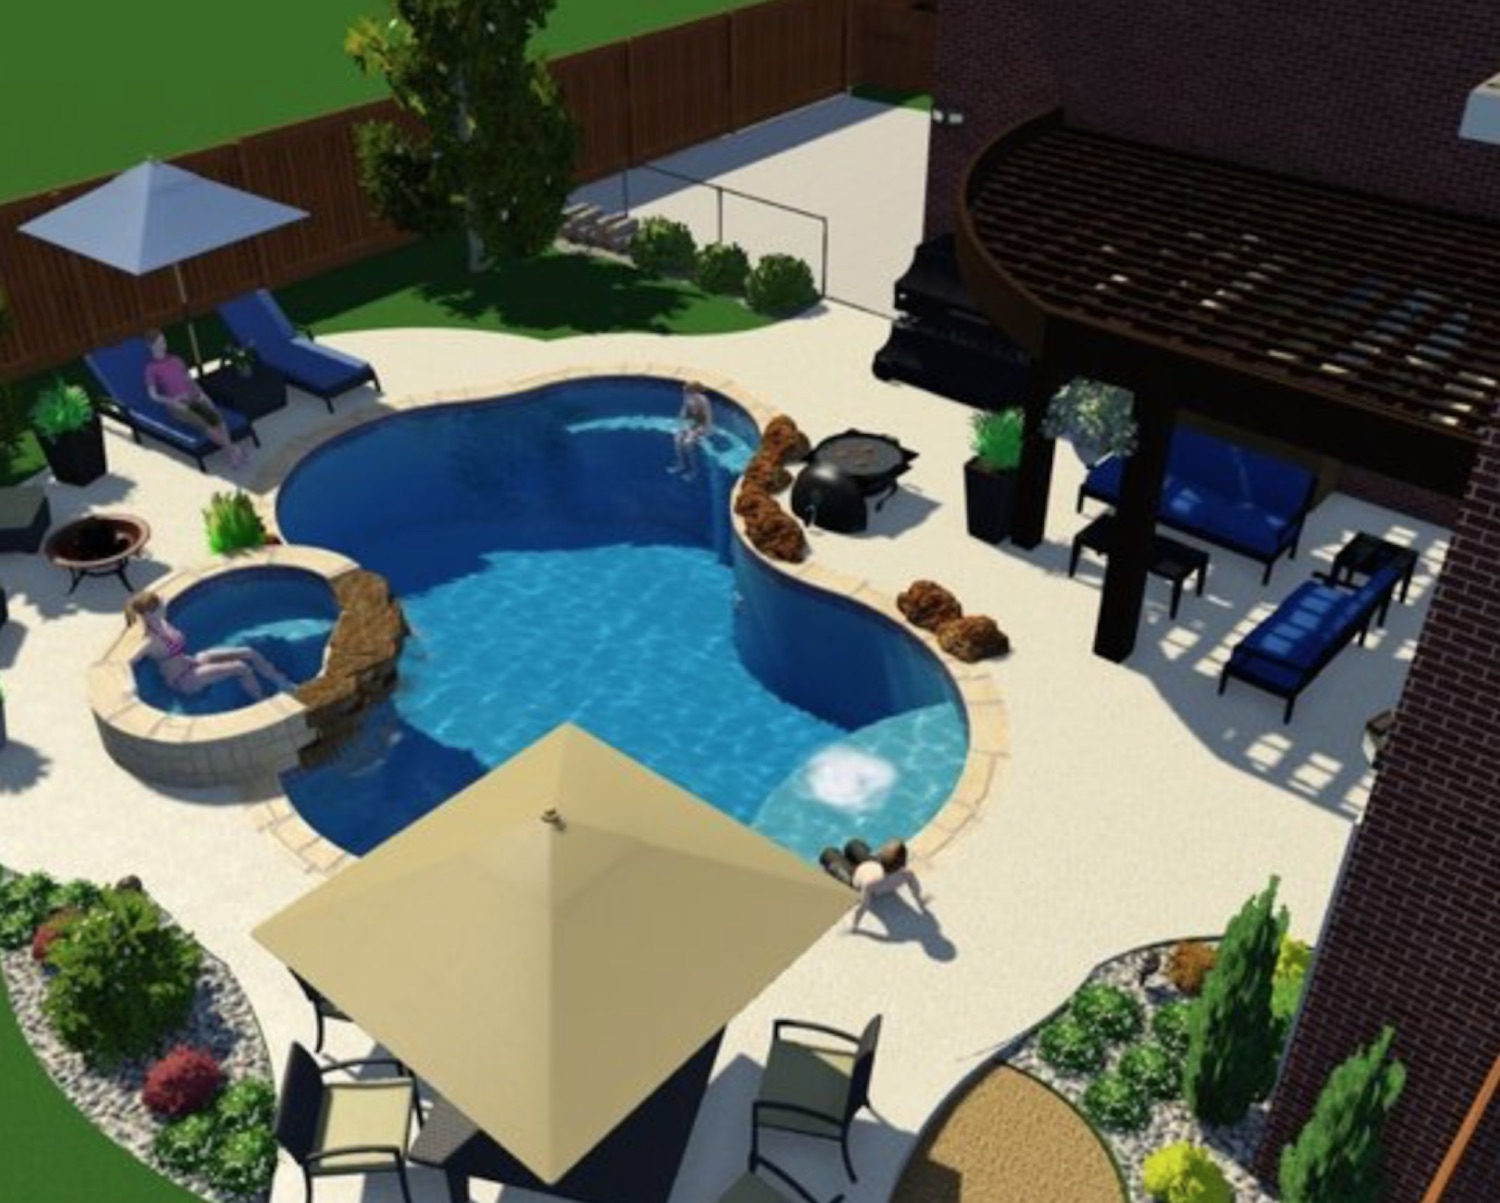 pool_landscape_outdoor_living_dining_driveway_enclosure.jpg